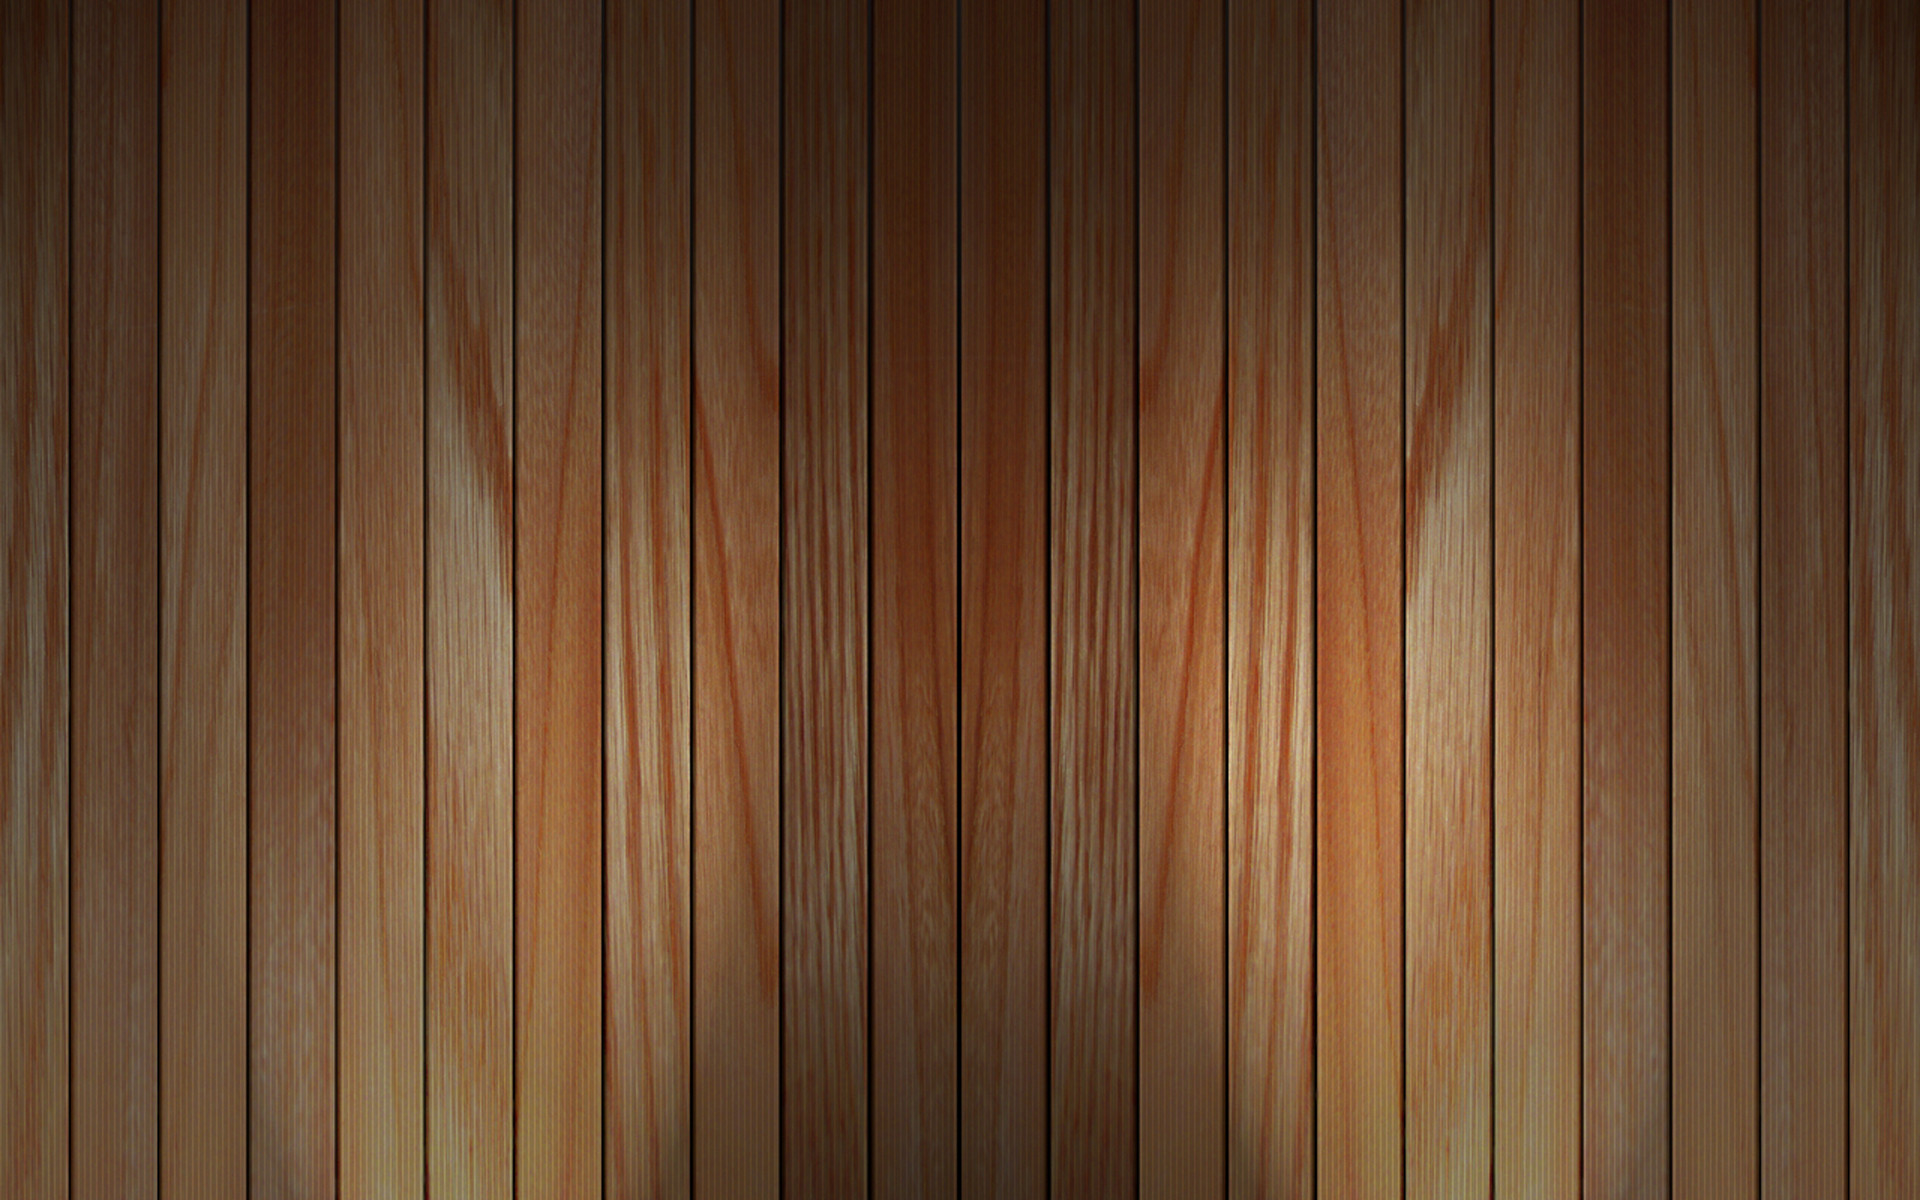 1920x1200 hd wood grain wallpapers pixelstalknet - Wood Grain Wall Paper